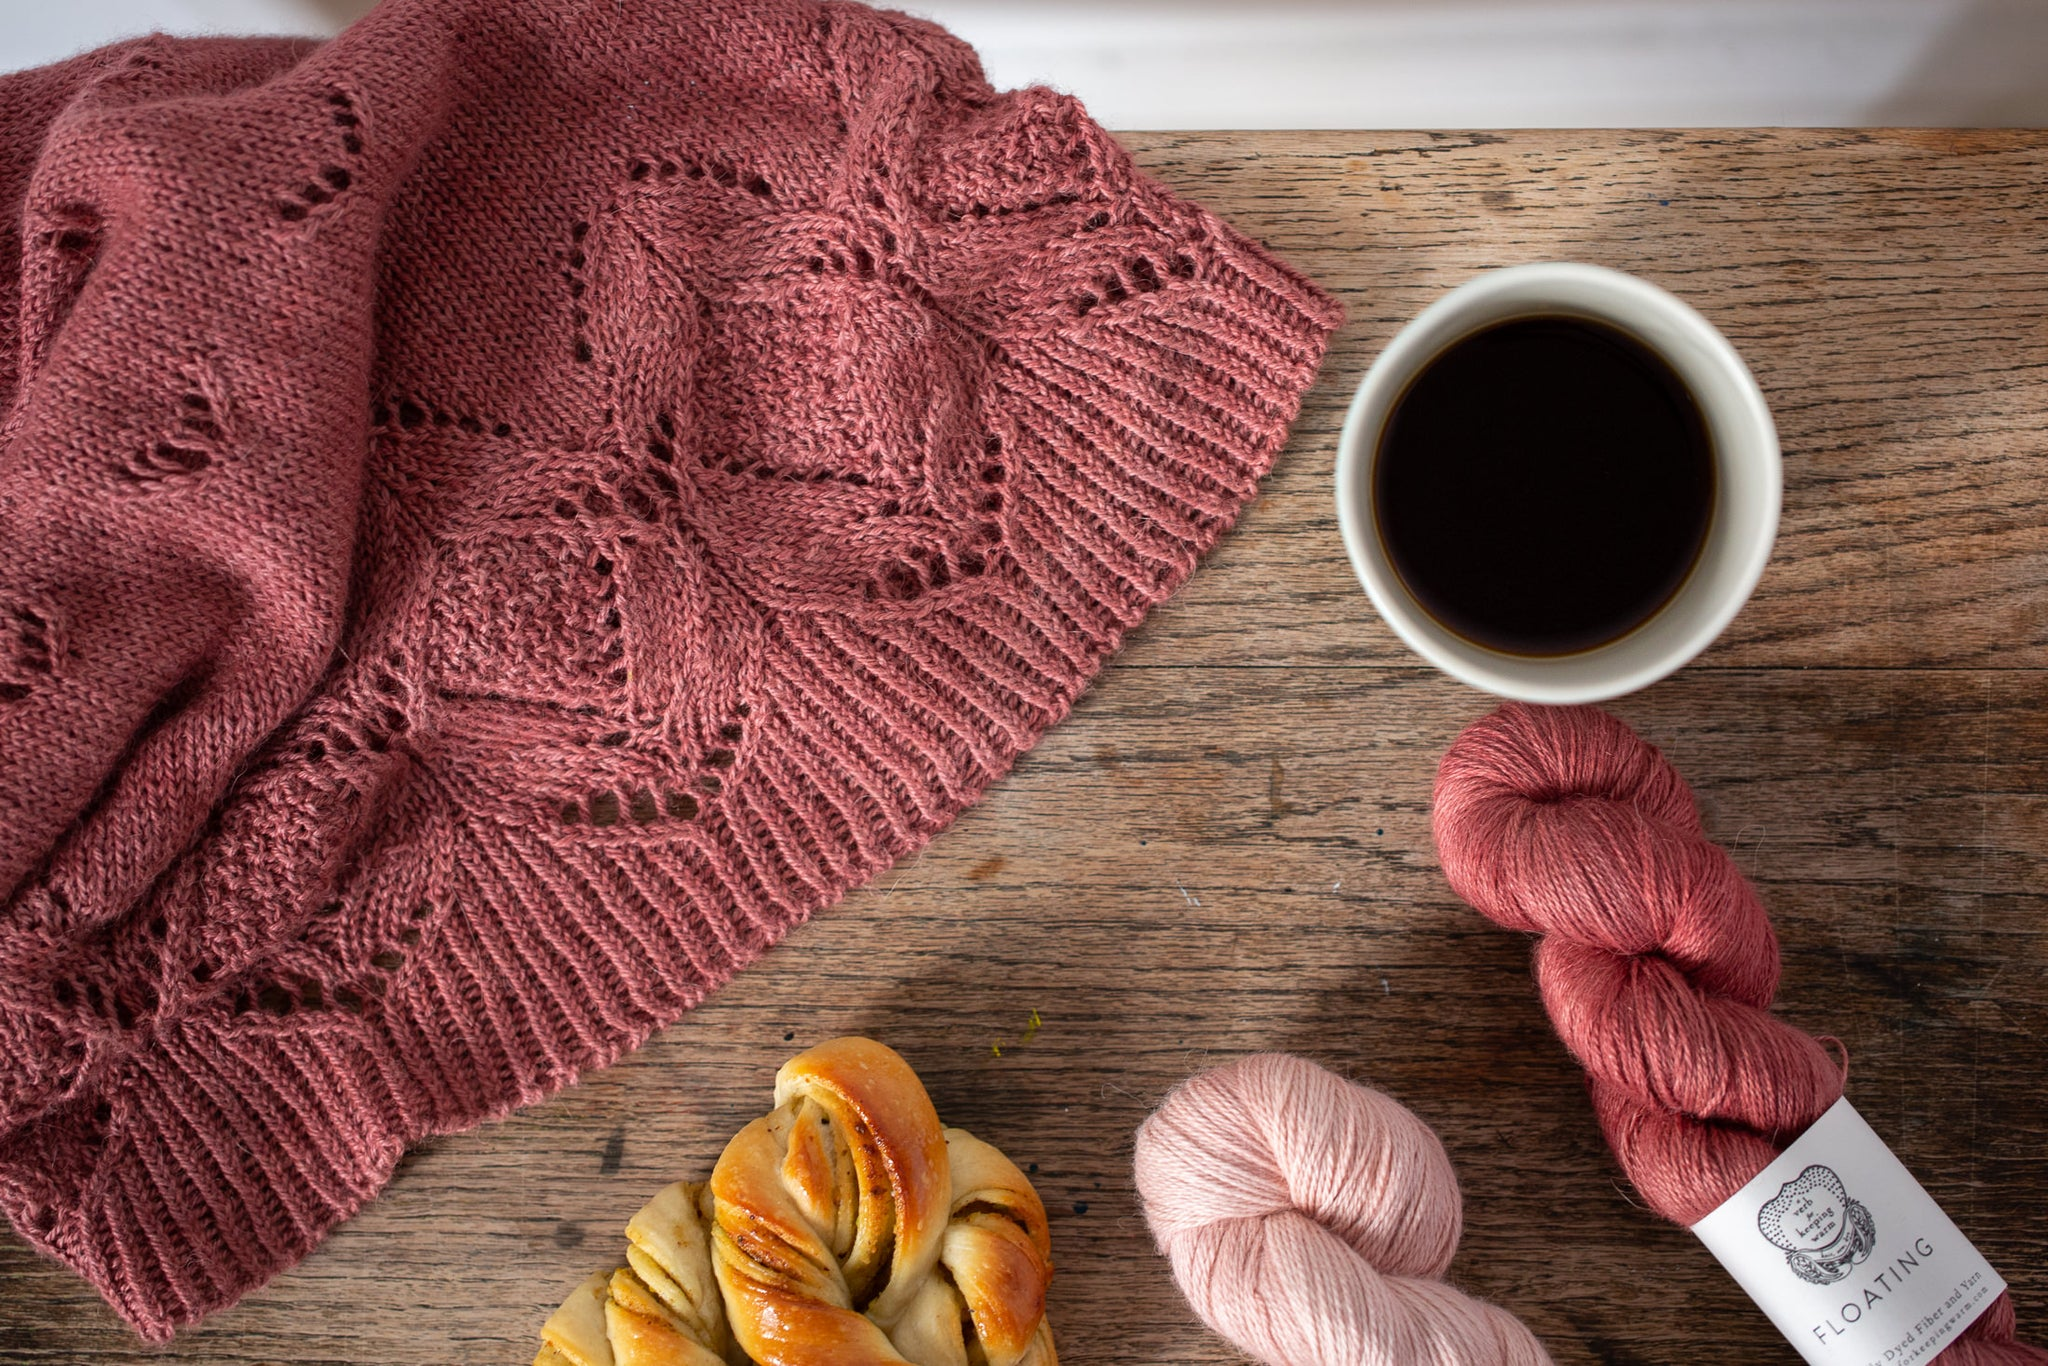 flat lay image of the border of the Poza cowl on a table with a coffee cup, pastry and two skeins of yarn